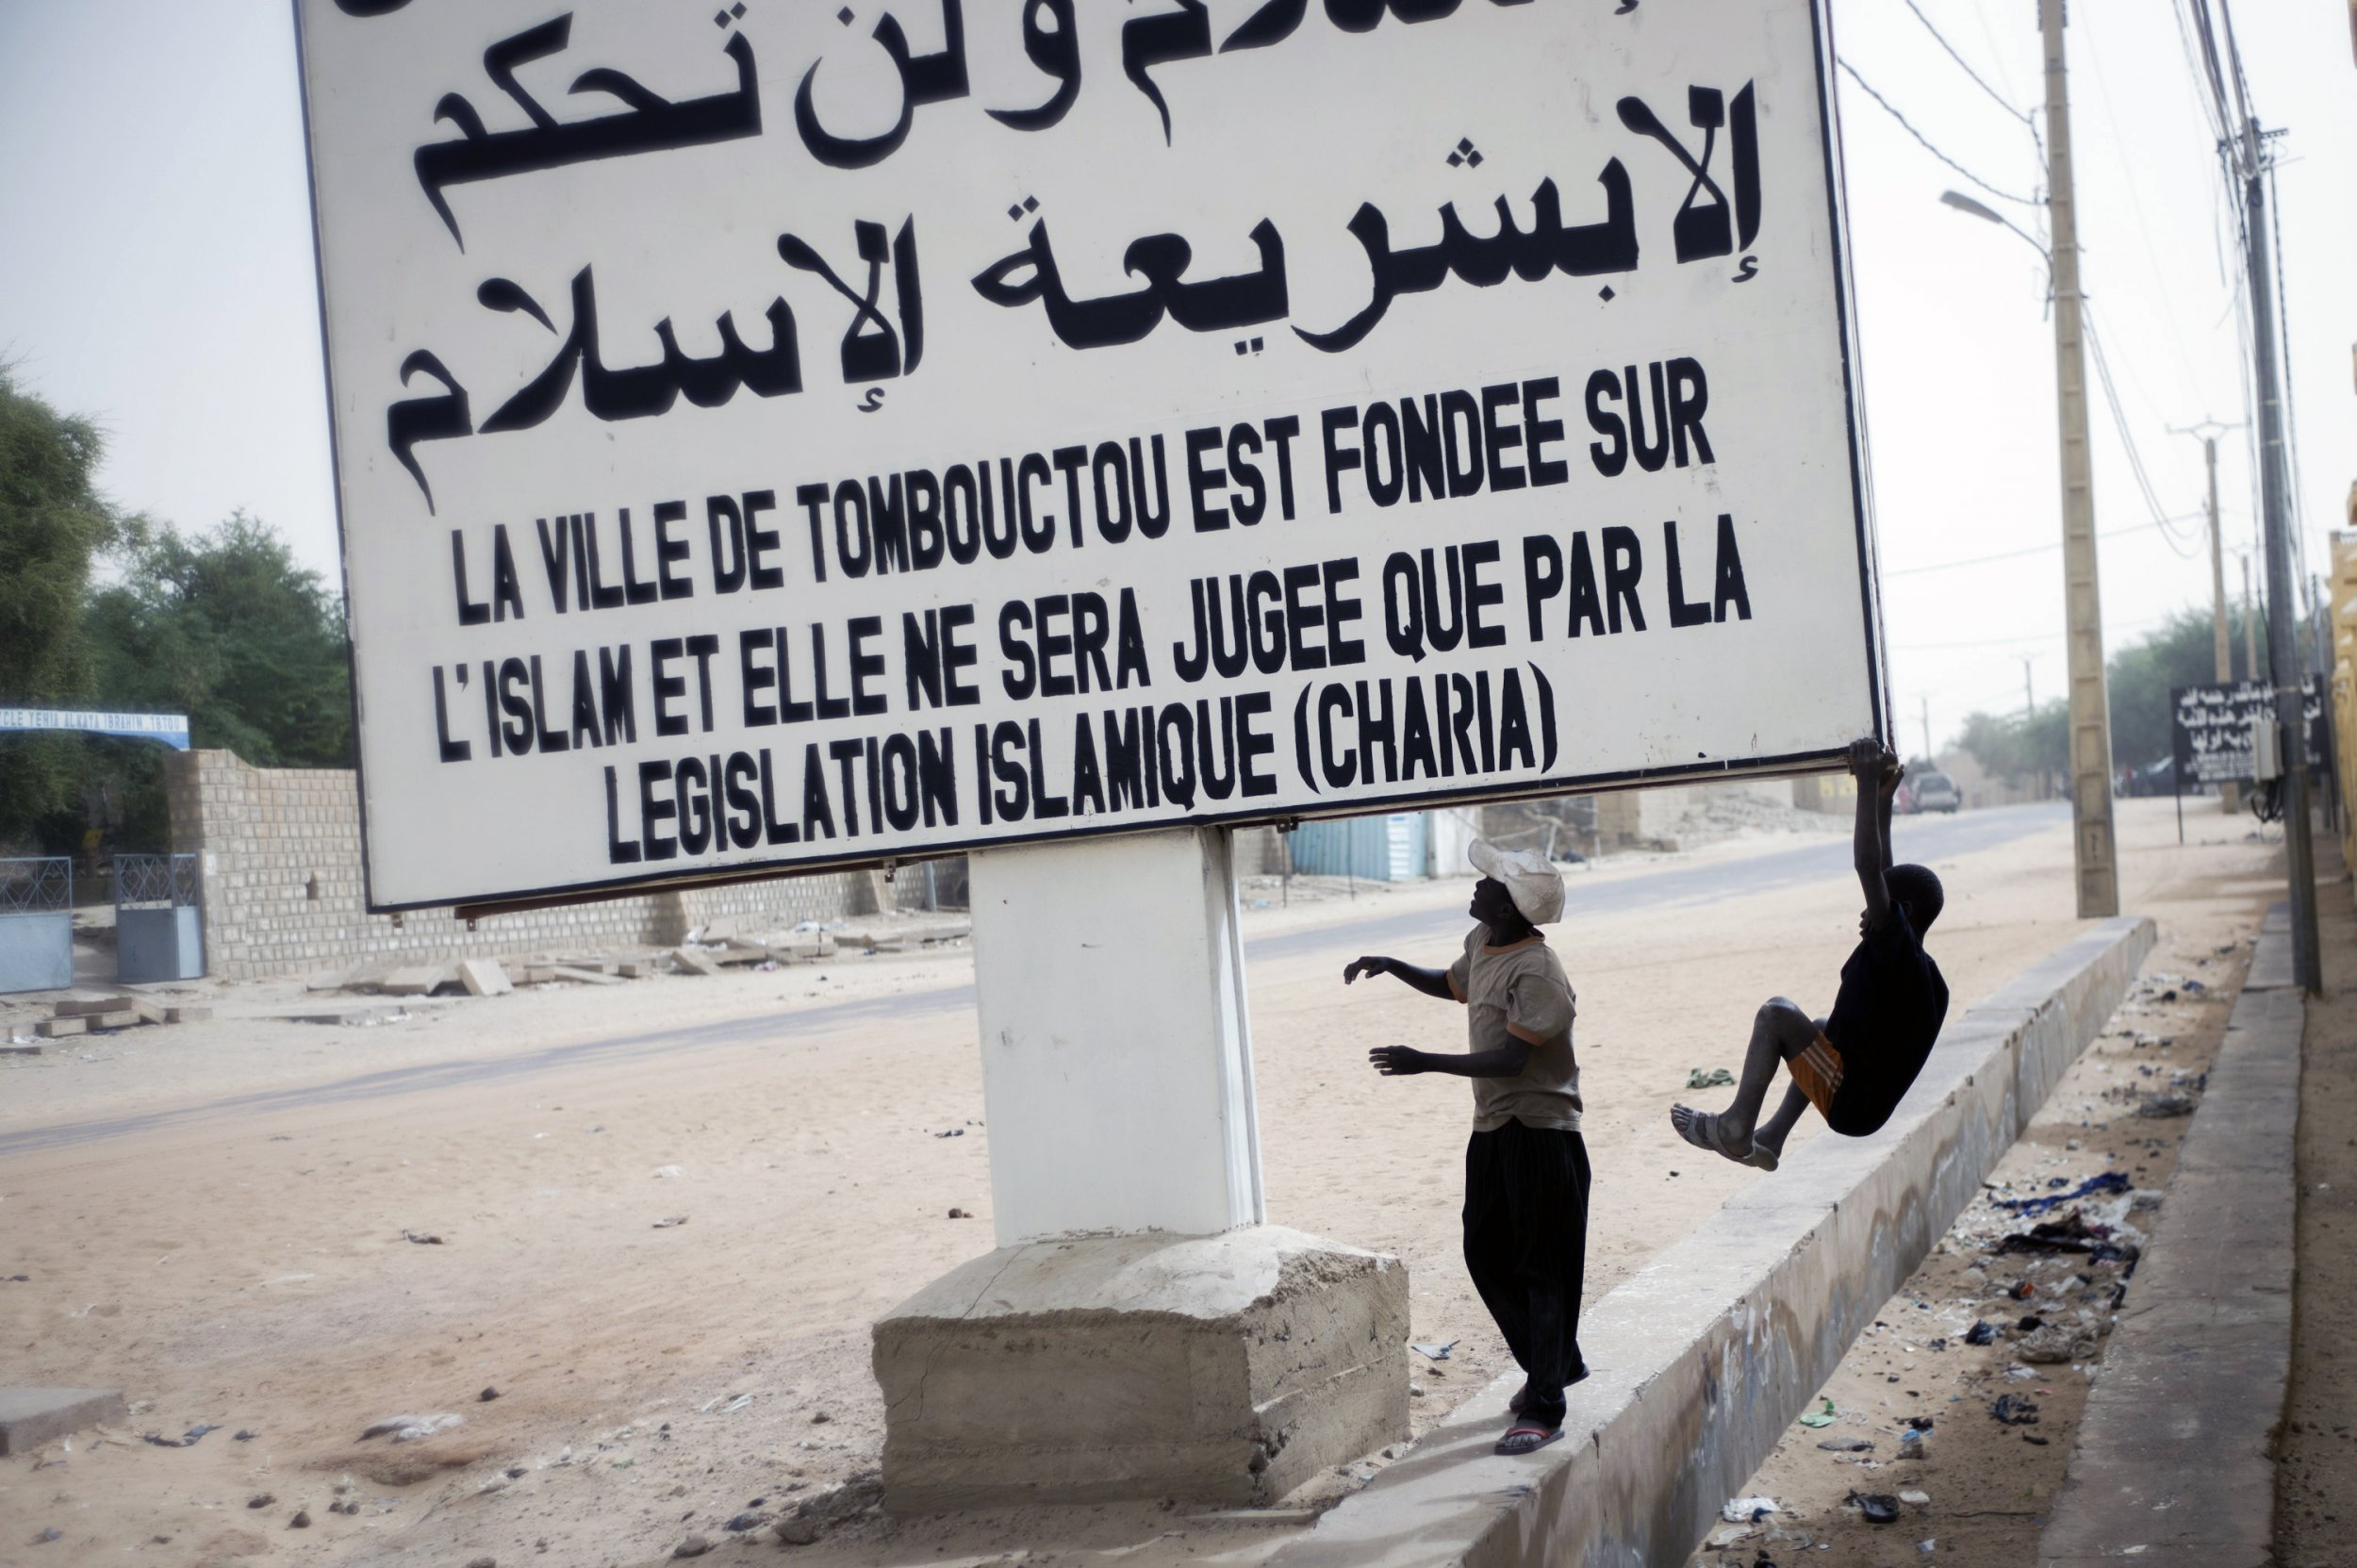 Children play on a sign in Timbuktu, northern Mali.